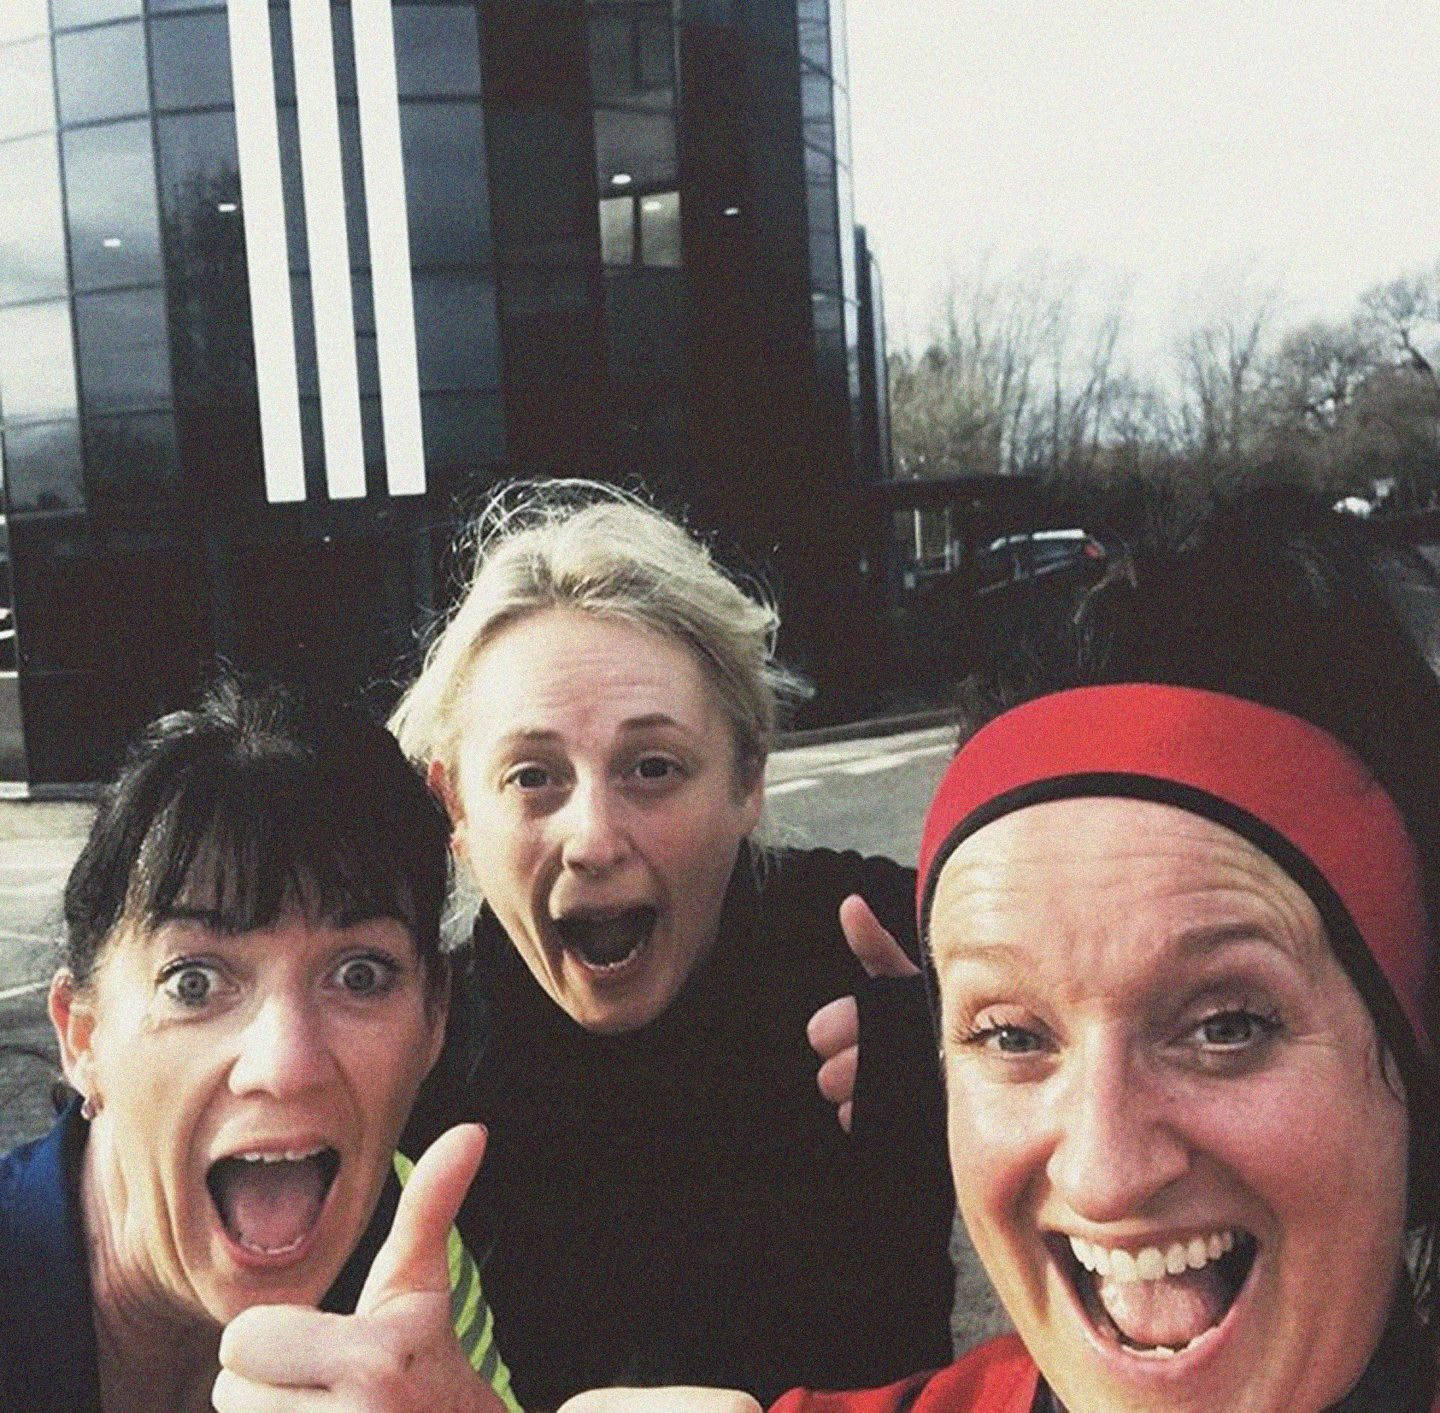 Three woman smiling and posing happily after running session, Sarah Sanderson, sport, fitness, team, friends, run